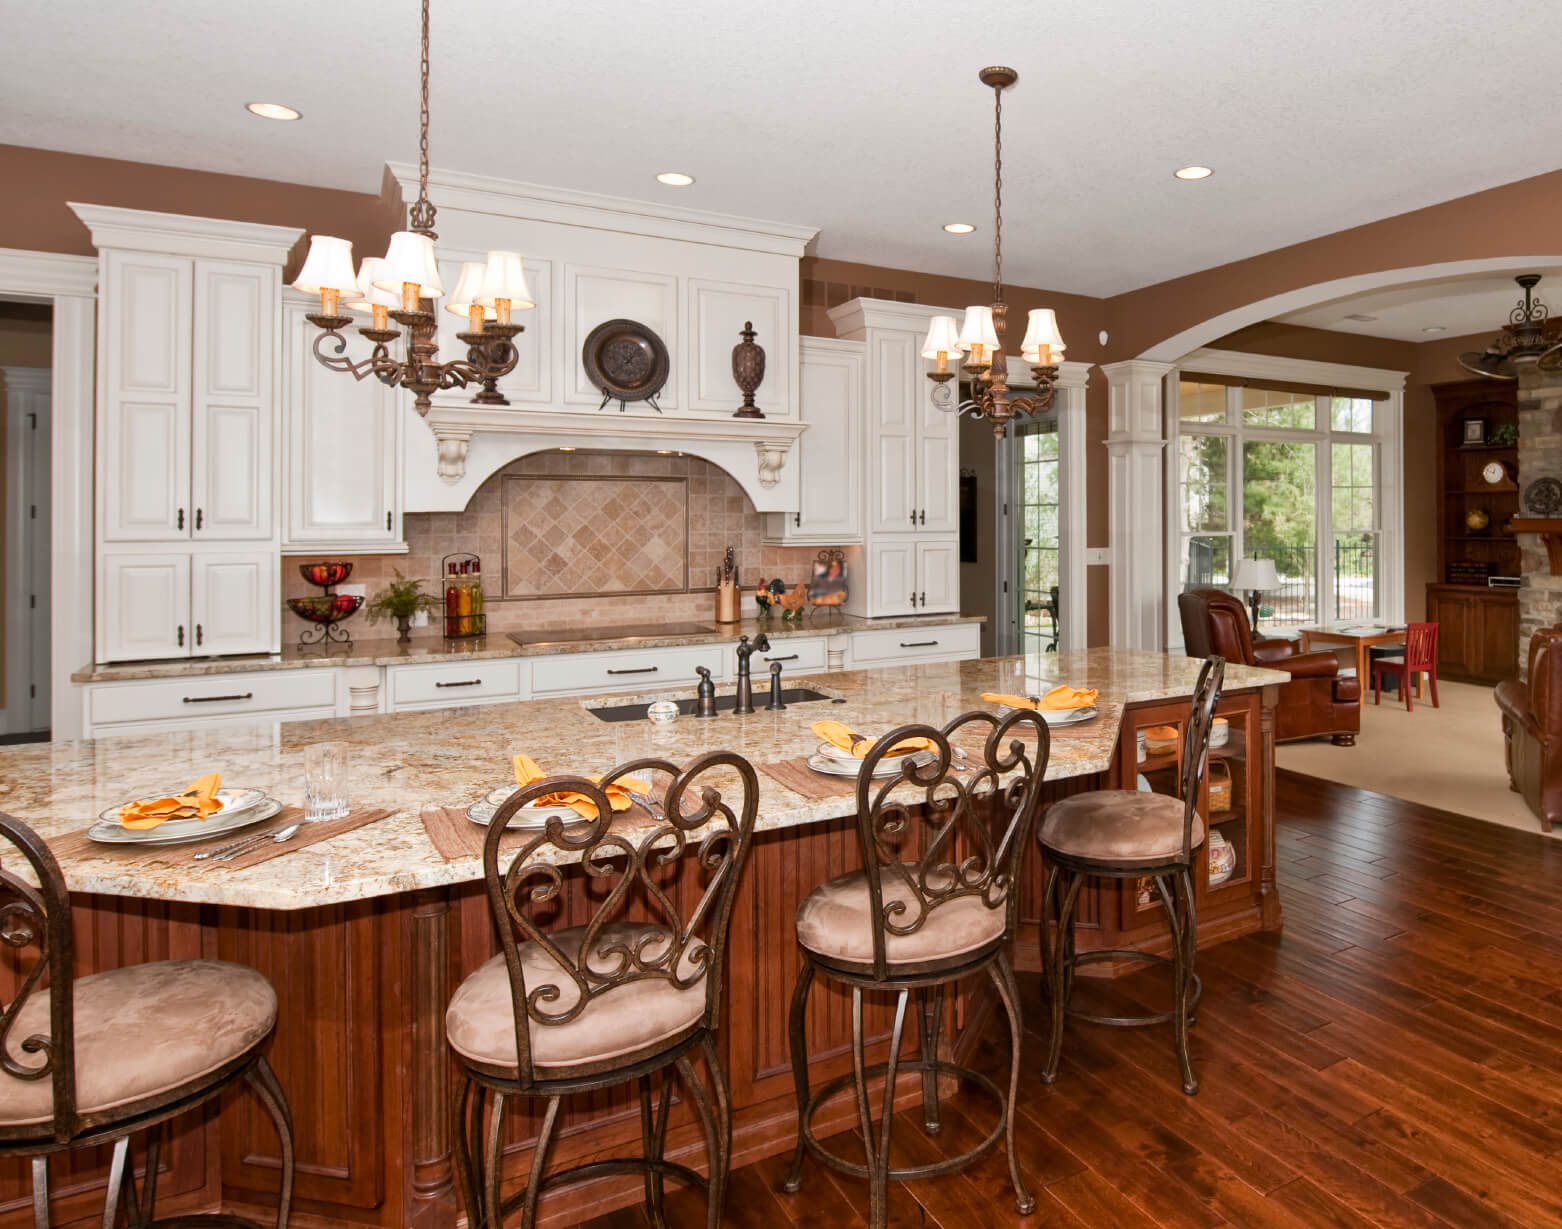 Large, Open Kitchen Features Immense Island Done In Natural Wood Tones,  With Built